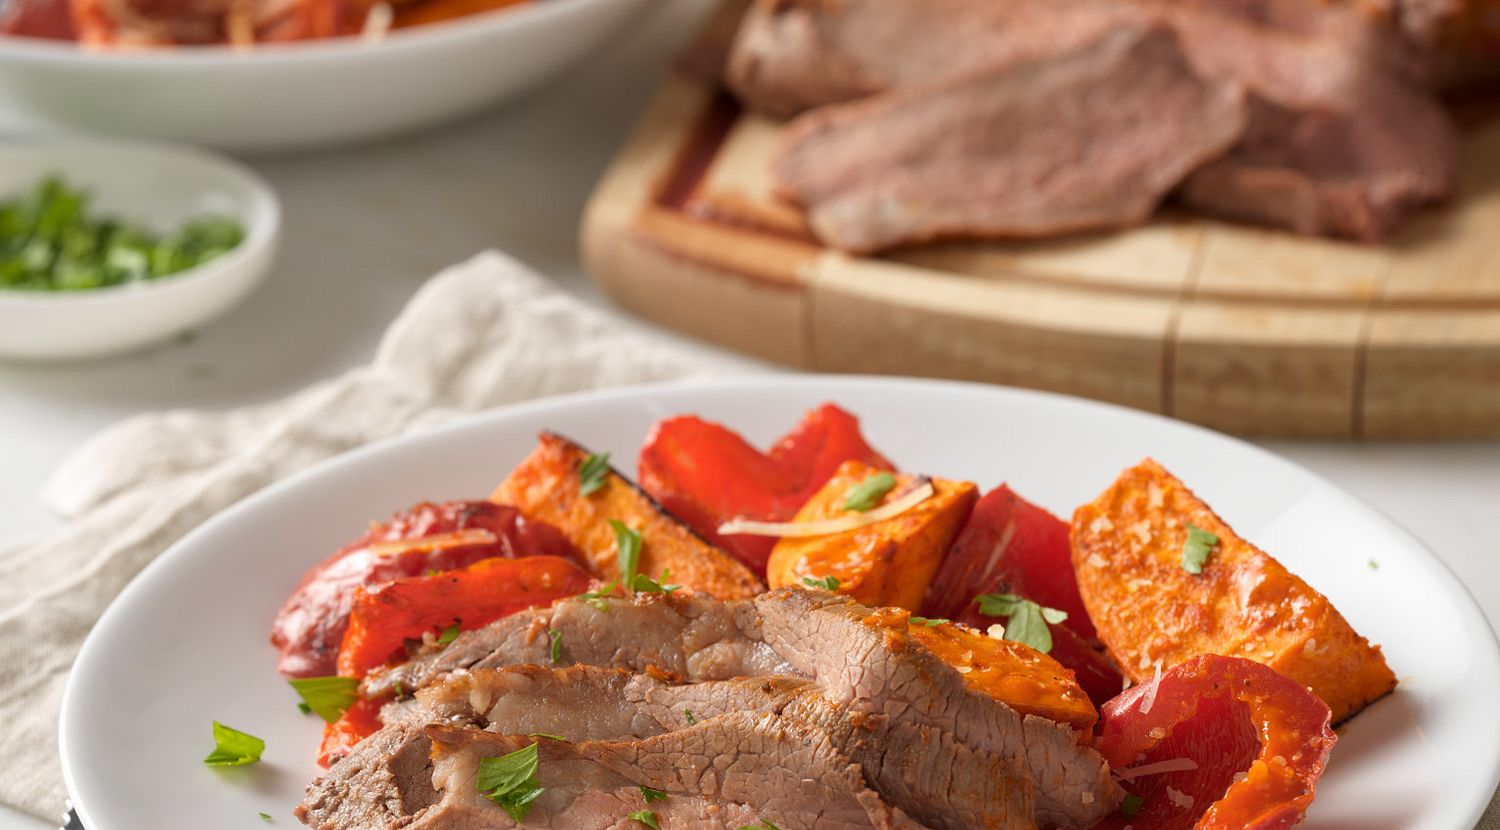 Roasted Sun-Dried Tomato Beef Tri-Tip with Peppers and Sweet Potatoes